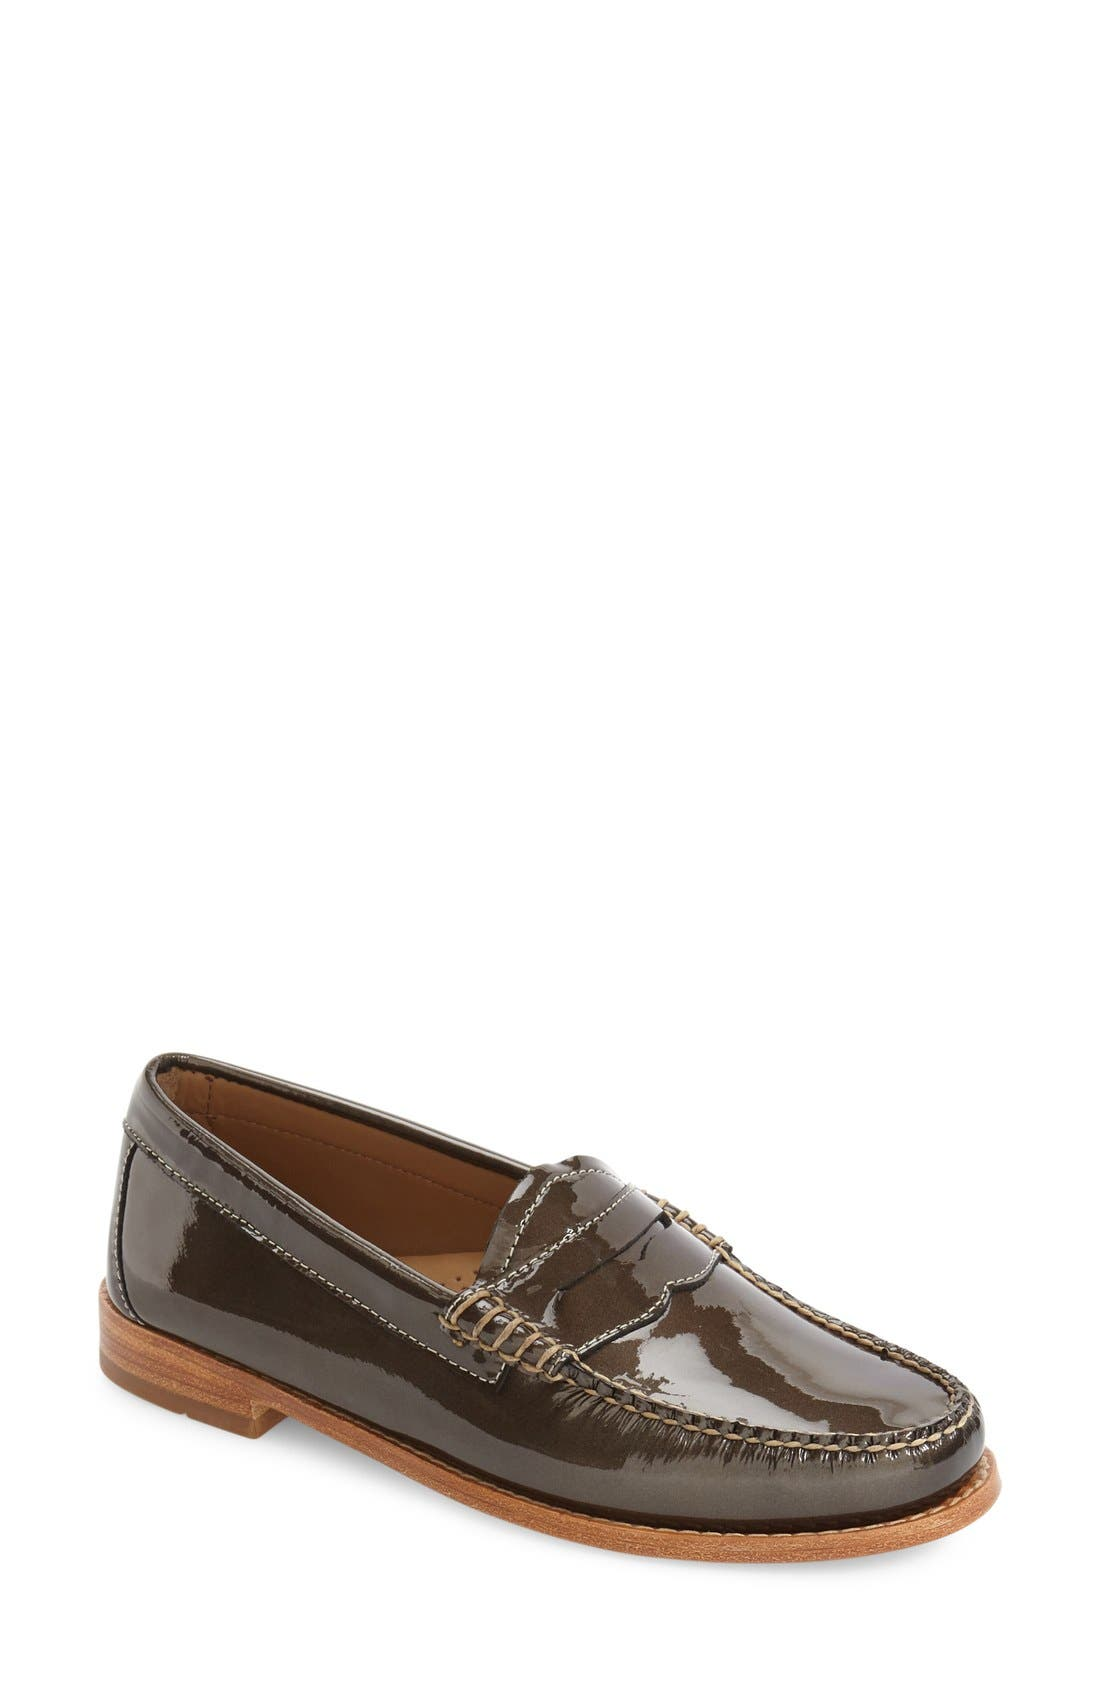 'Whitney' Loafer,                             Main thumbnail 26, color,